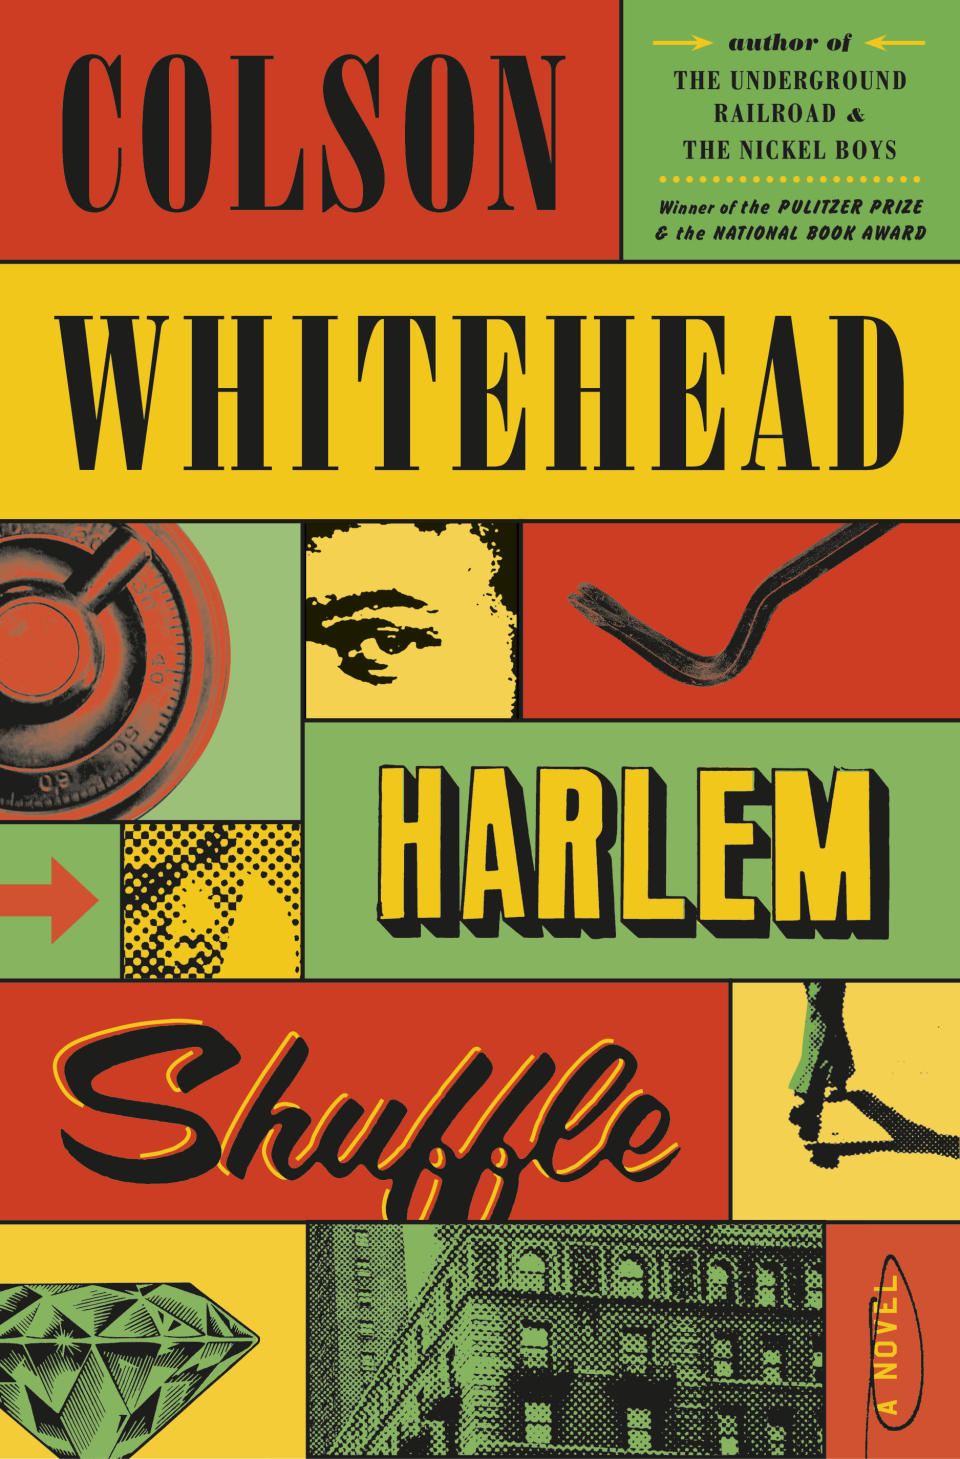 """This cover image released by Doubleday shows """"Harlem Shuffle"""" by Colson Whitehead, releasing Sept. 14. (Doubleday via AP)"""